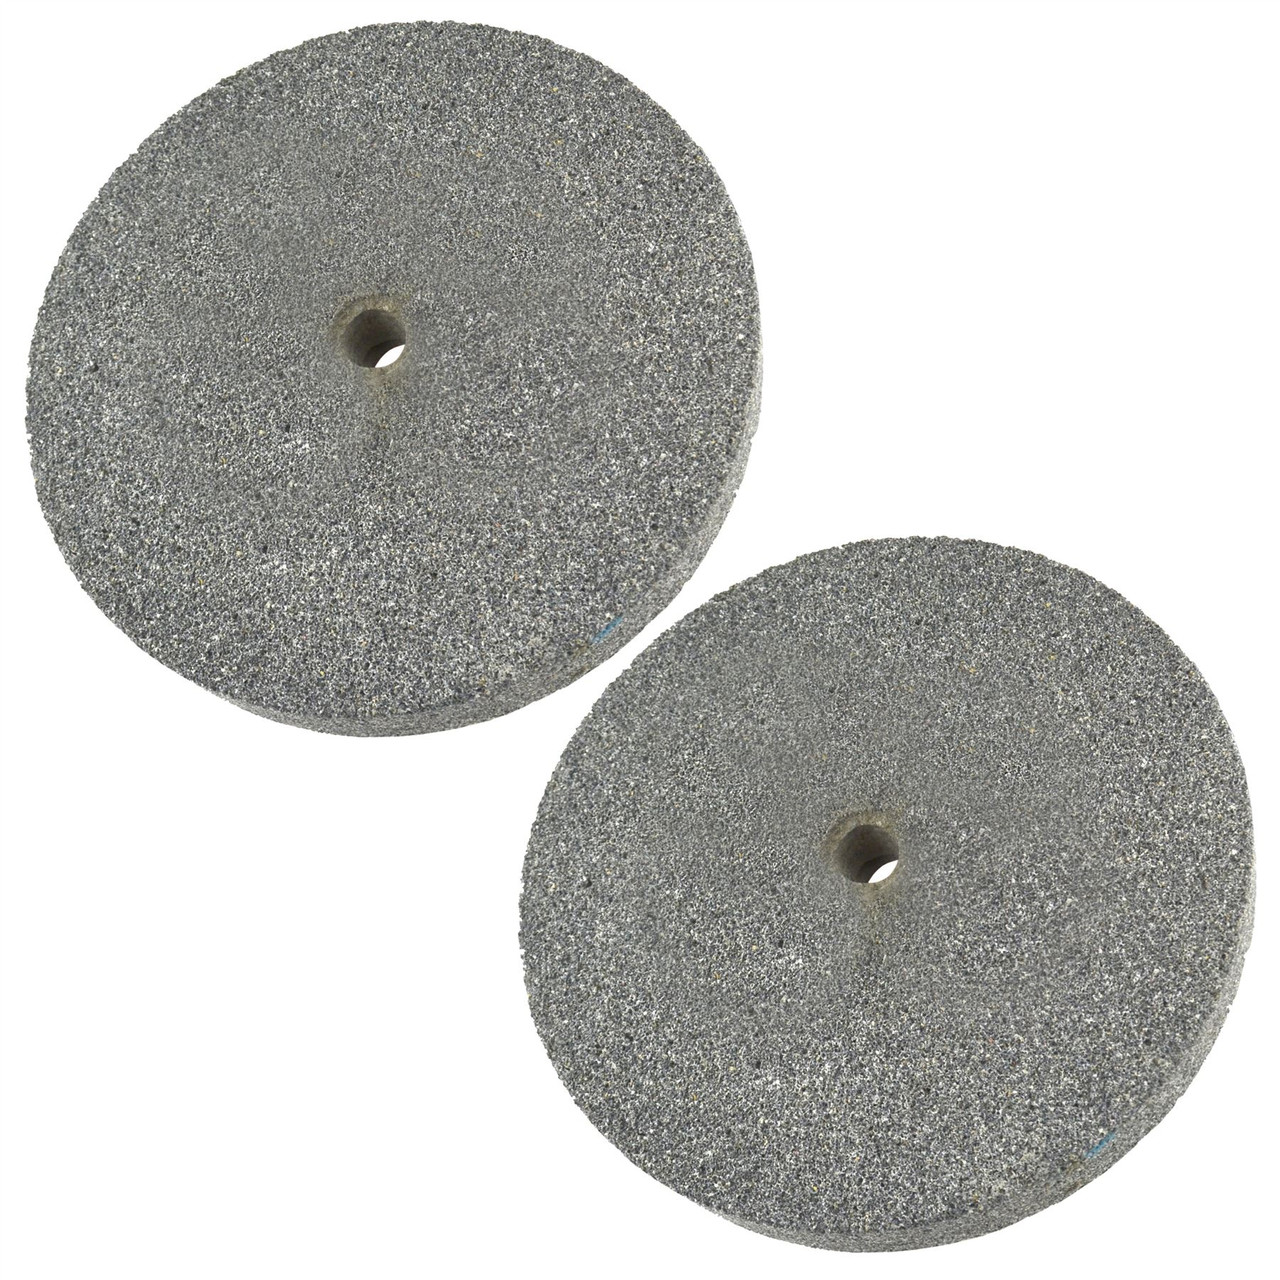 Fine 6 150Mm Coarse Fine Grinding Wheel Bench Grinder Stone 36 60 Grit Gmtry Best Dining Table And Chair Ideas Images Gmtryco